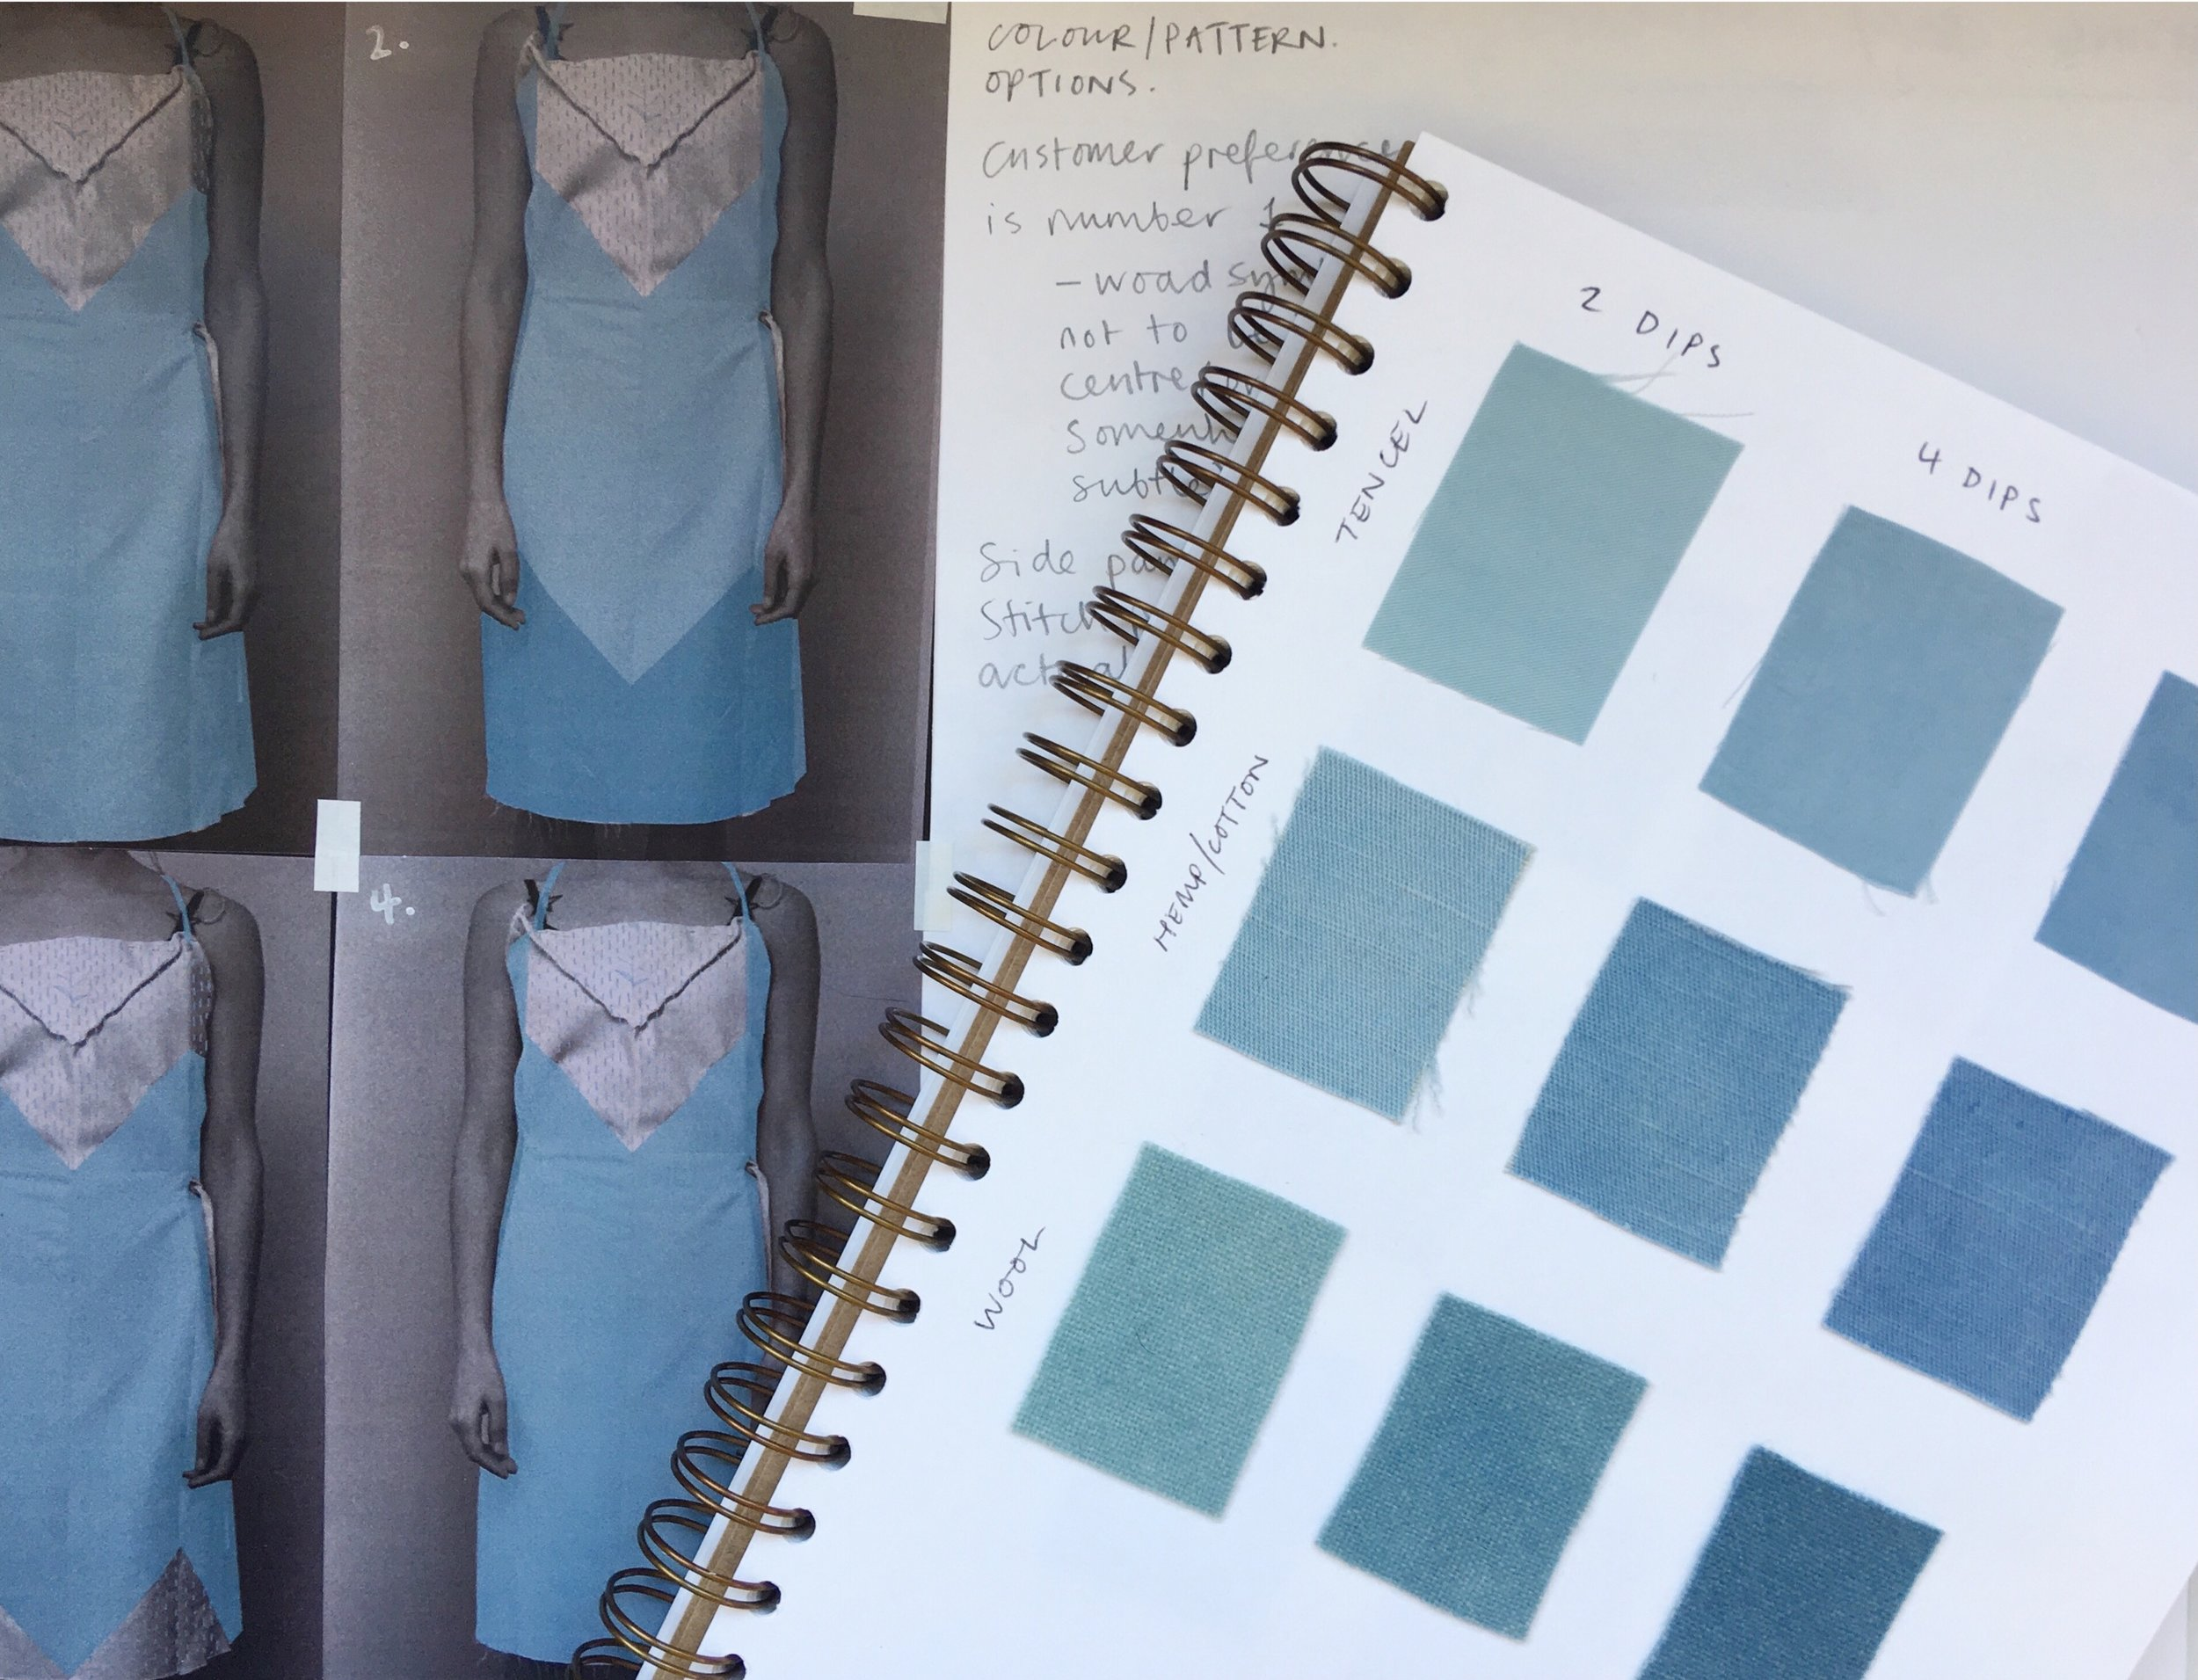 Initial plans and dye sketchbook: I love using this woad because I can source it in the UK. It is grown and processed by  Woad Inc  in Norfolk.